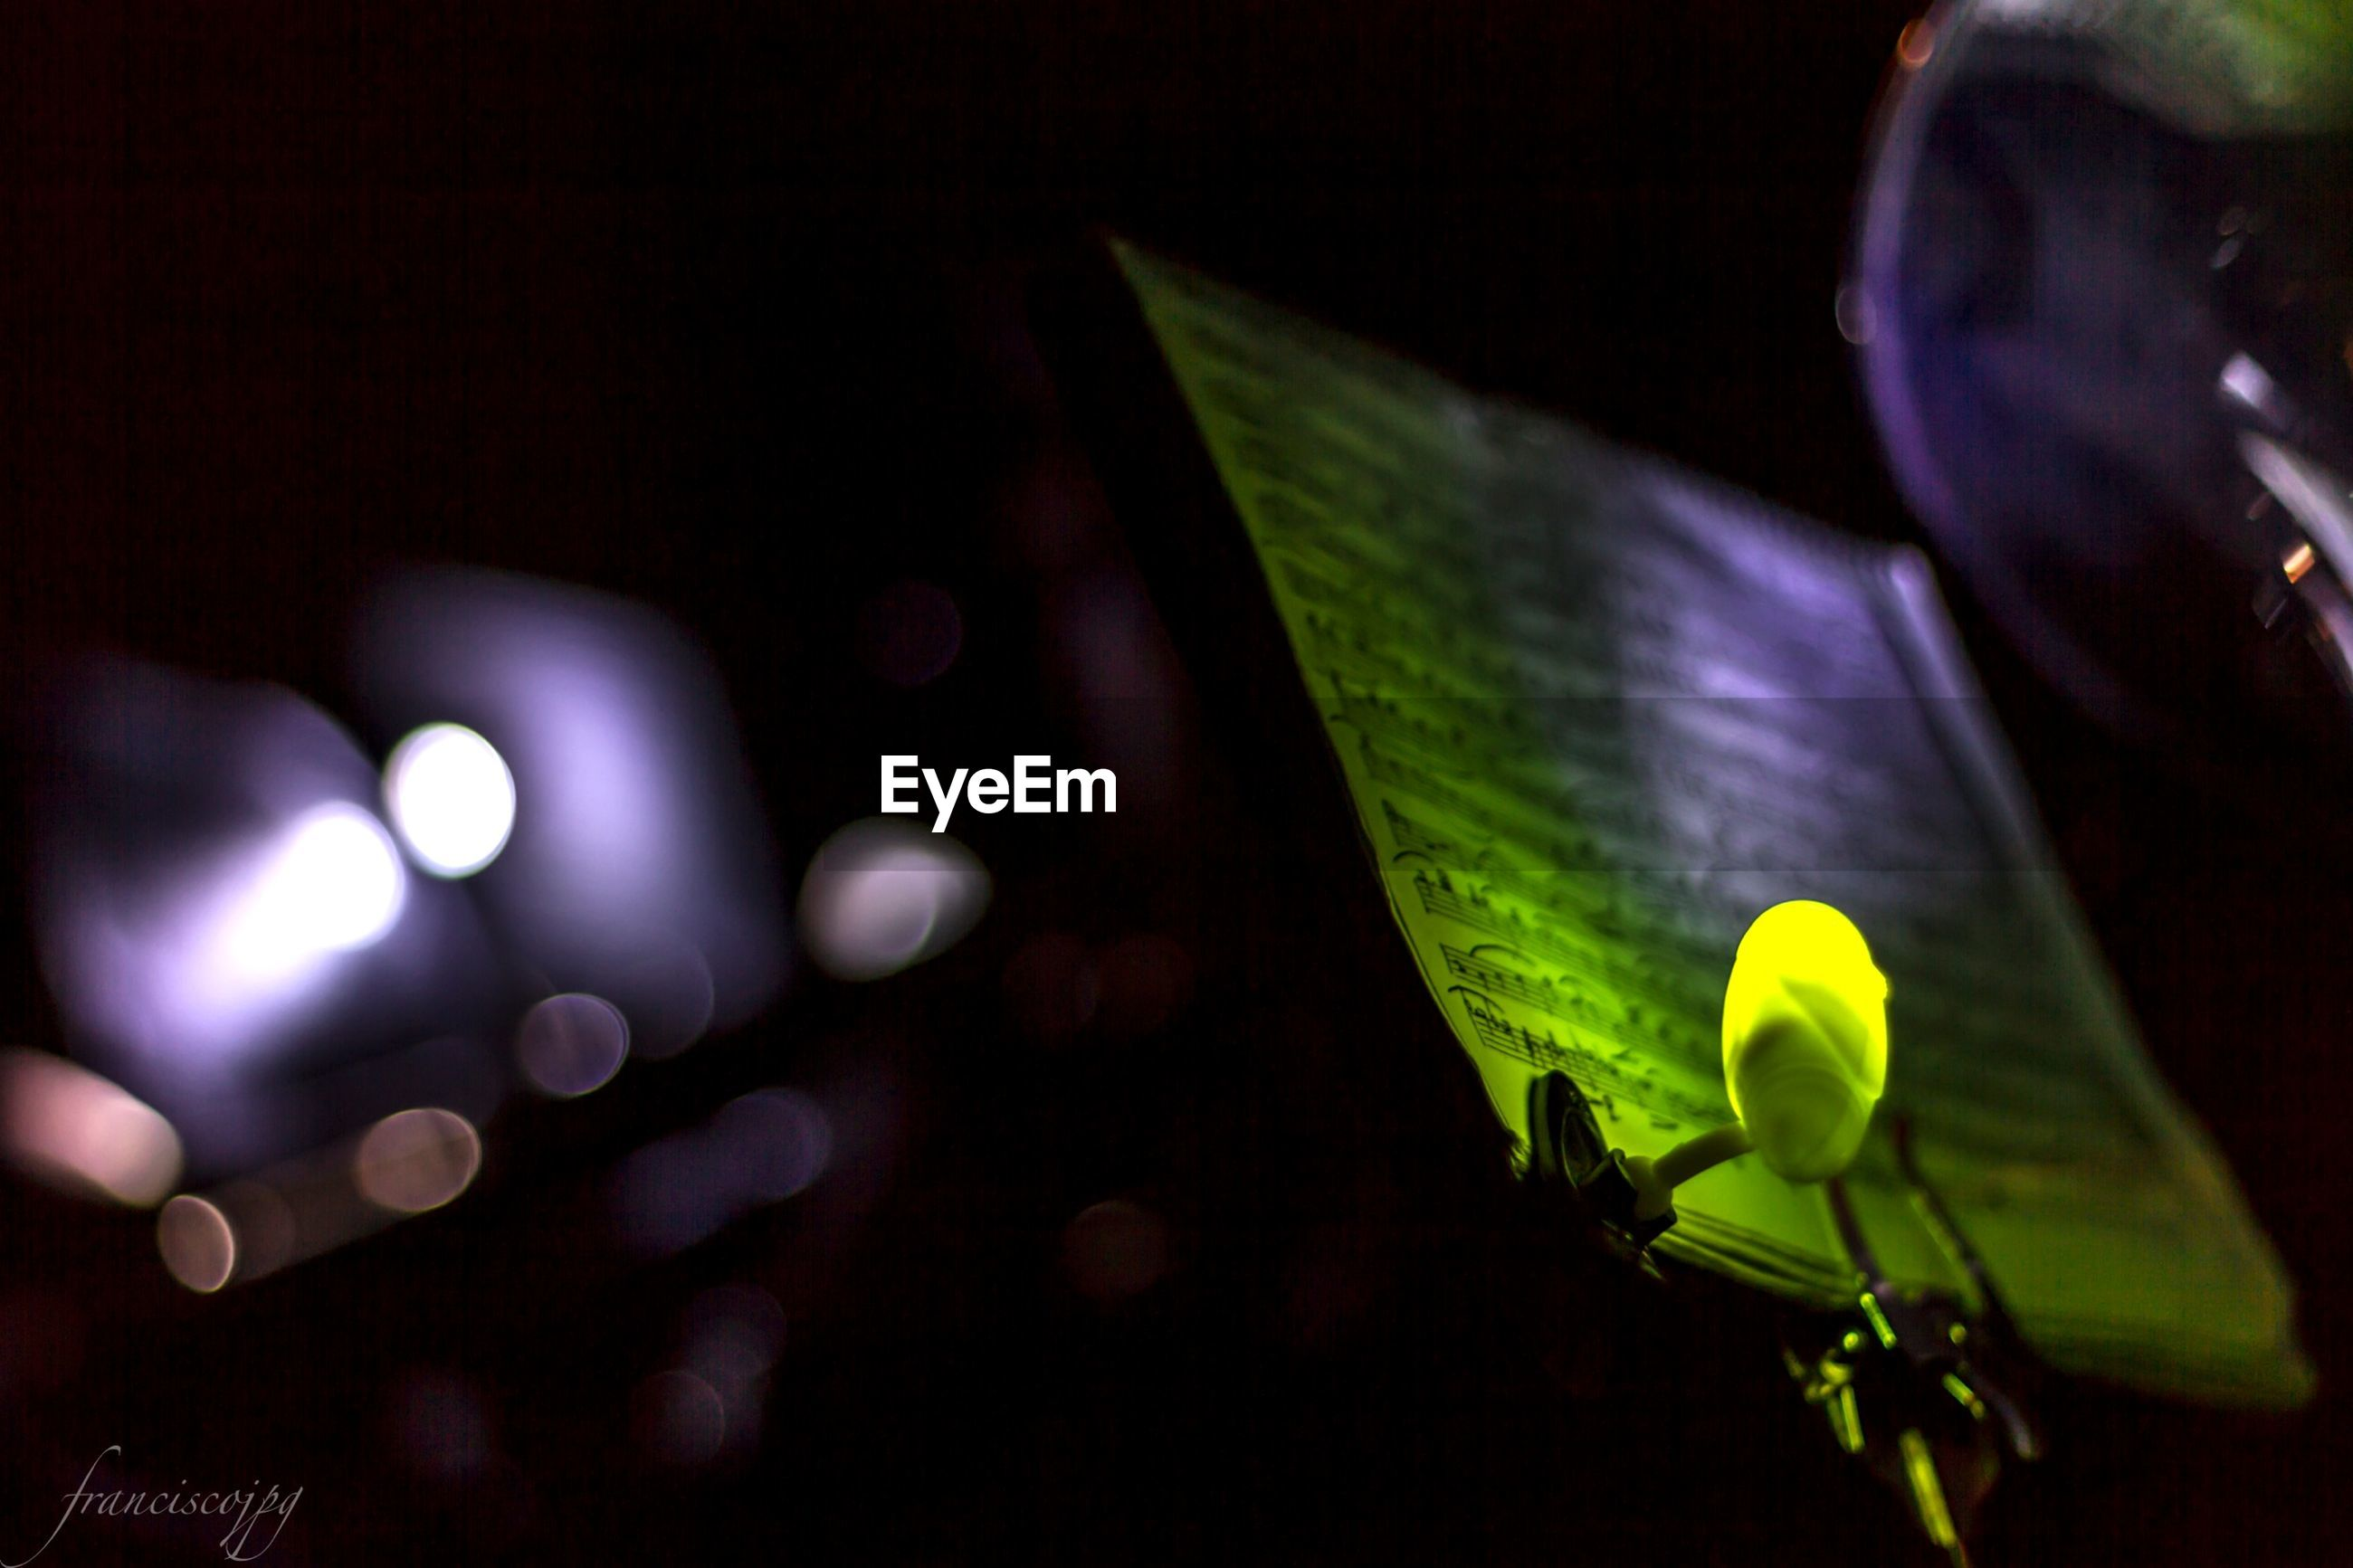 leaf, close-up, growth, plant, flower, green color, focus on foreground, freshness, fragility, nature, stem, selective focus, indoors, night, beauty in nature, no people, bud, petal, sunlight